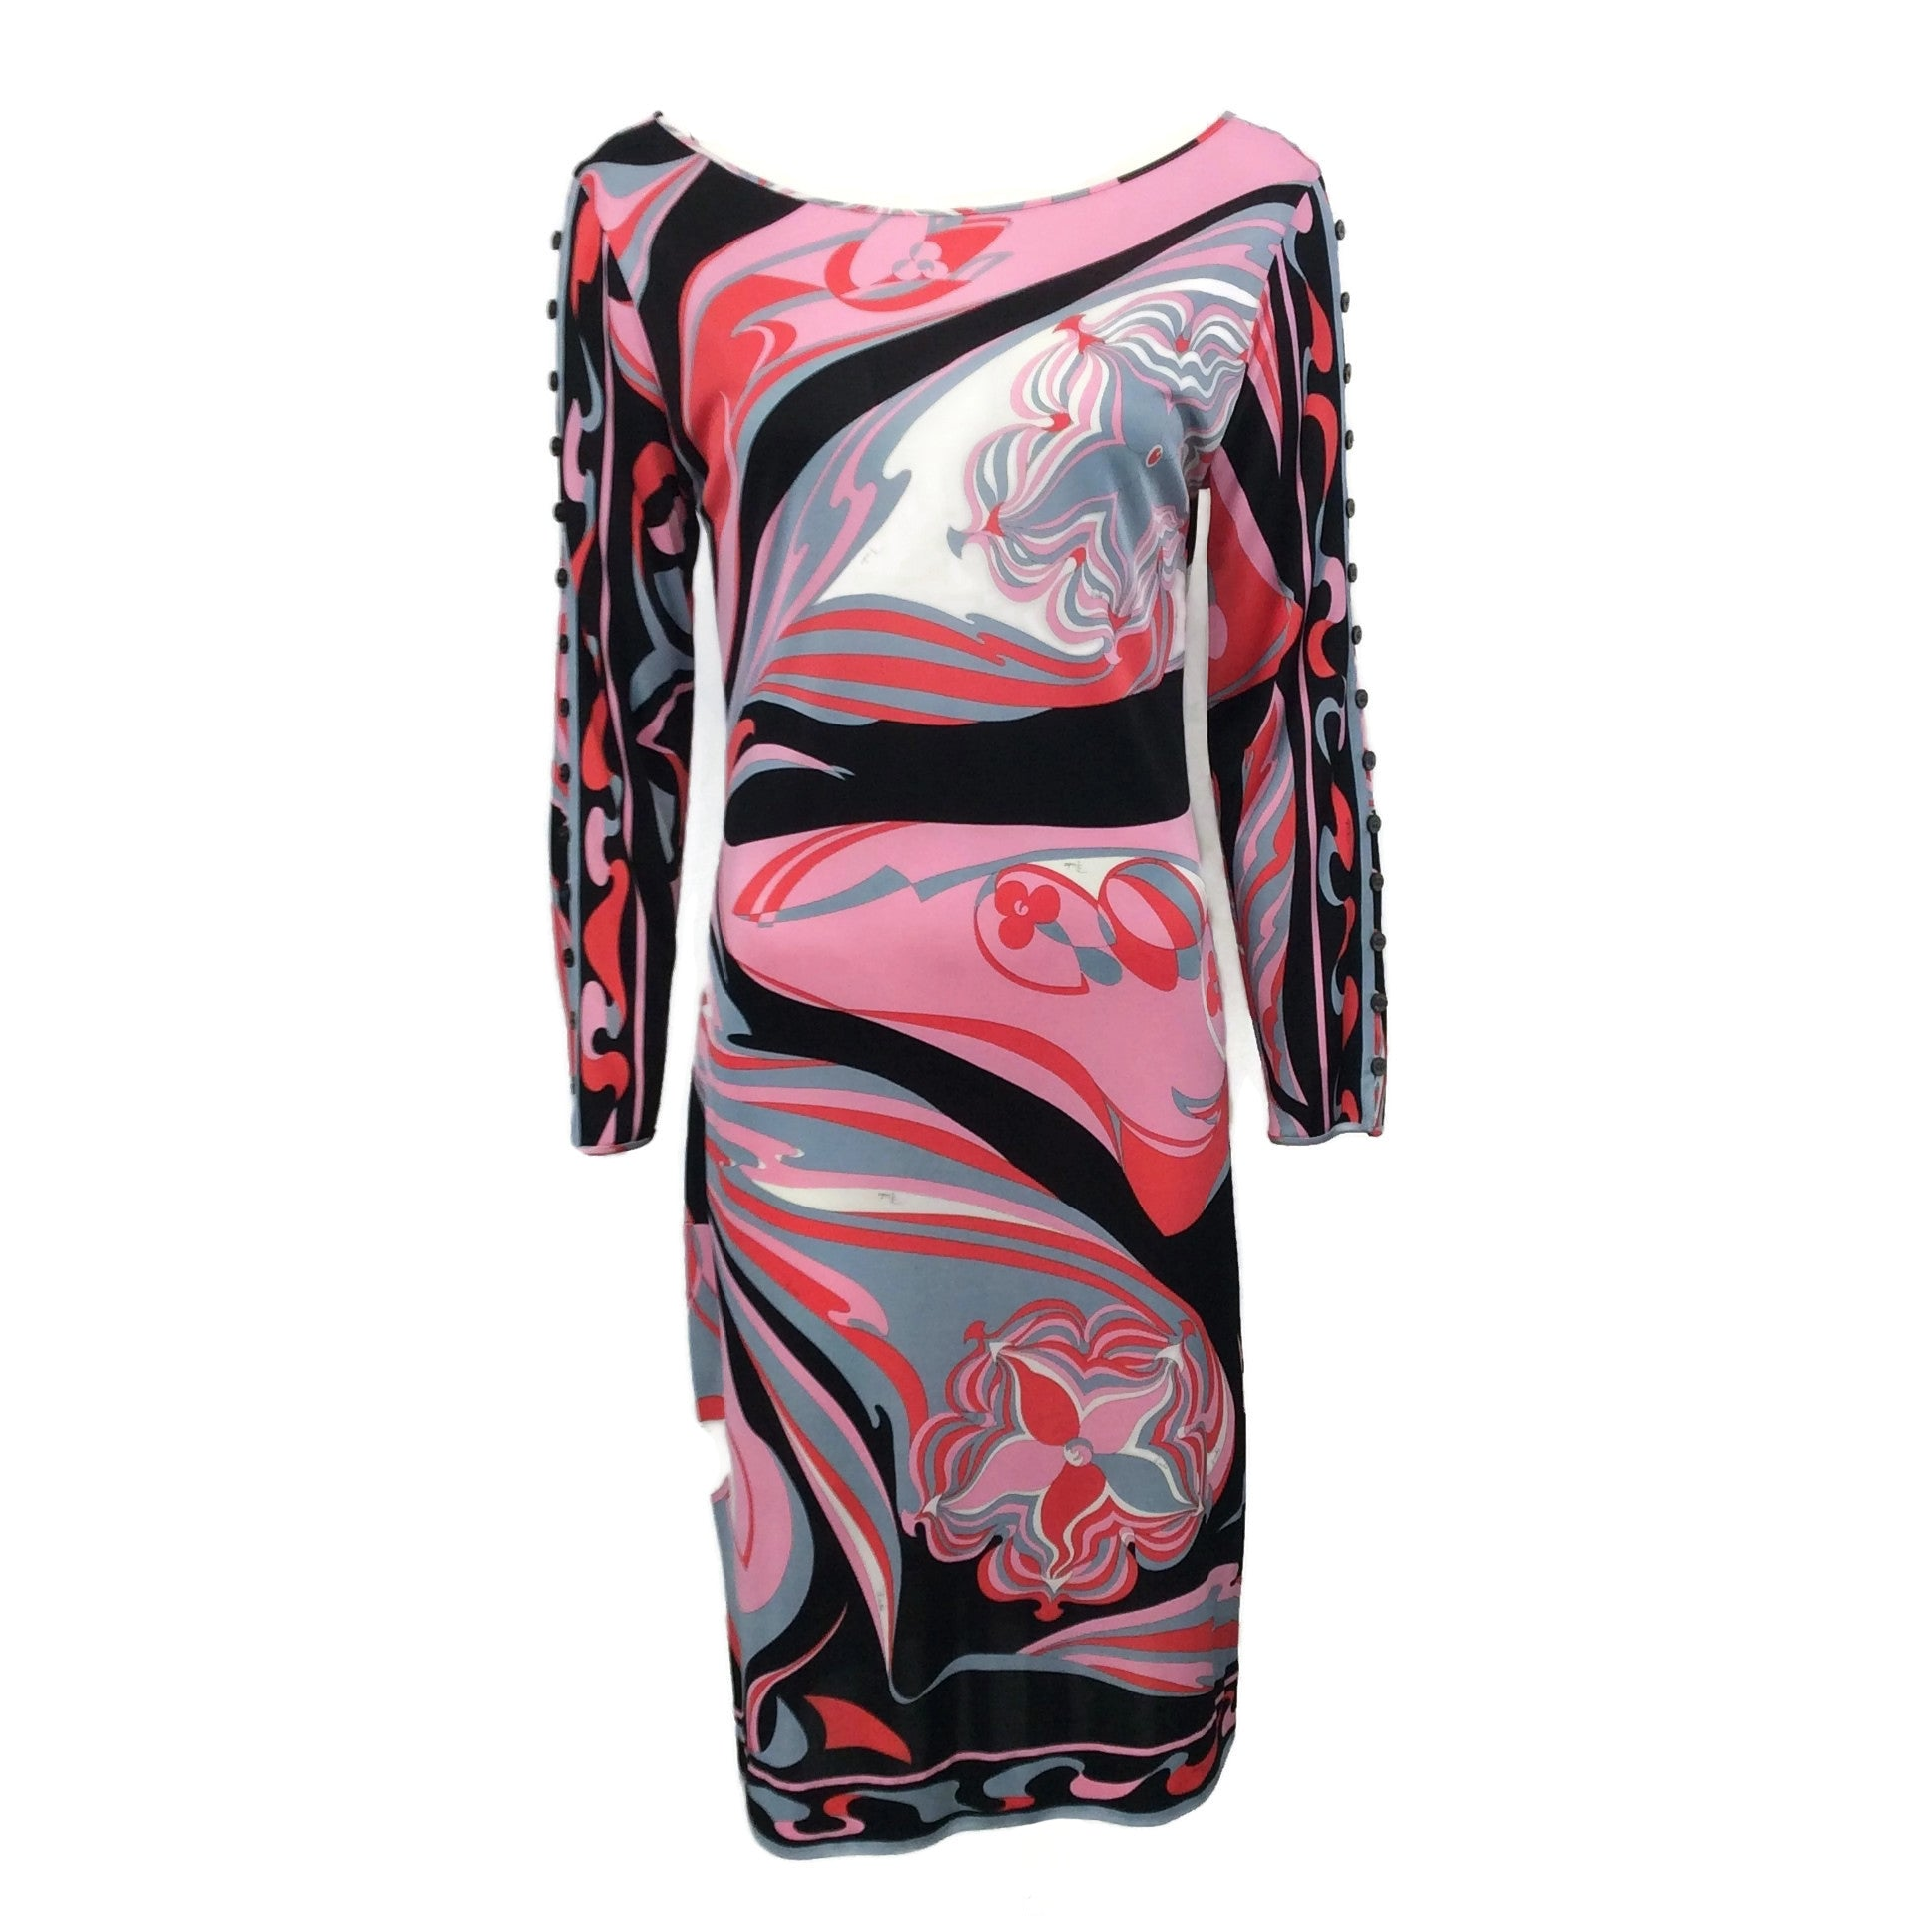 Emilio Pucci Pink / Red / Black Scoop Dress